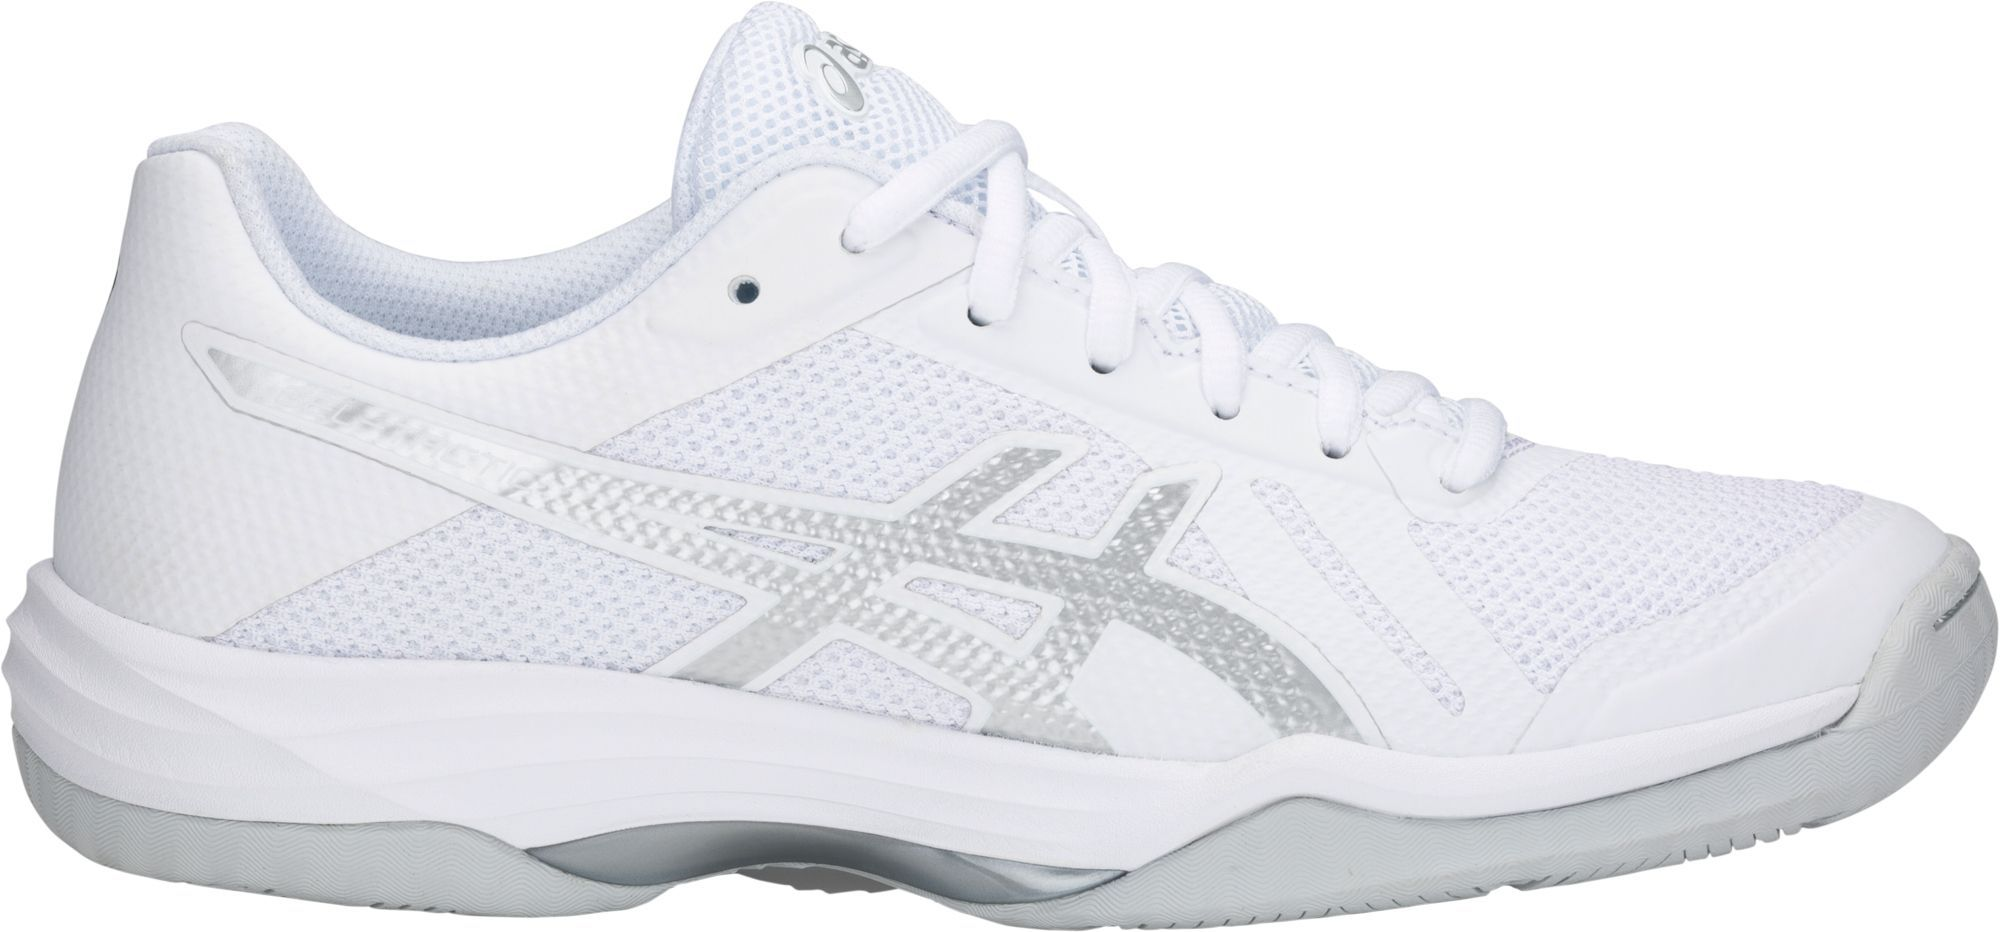 the best attitude 361d3 5eb03 Asics Women s Gel-Tactic 2 Volleyball Shoes, White